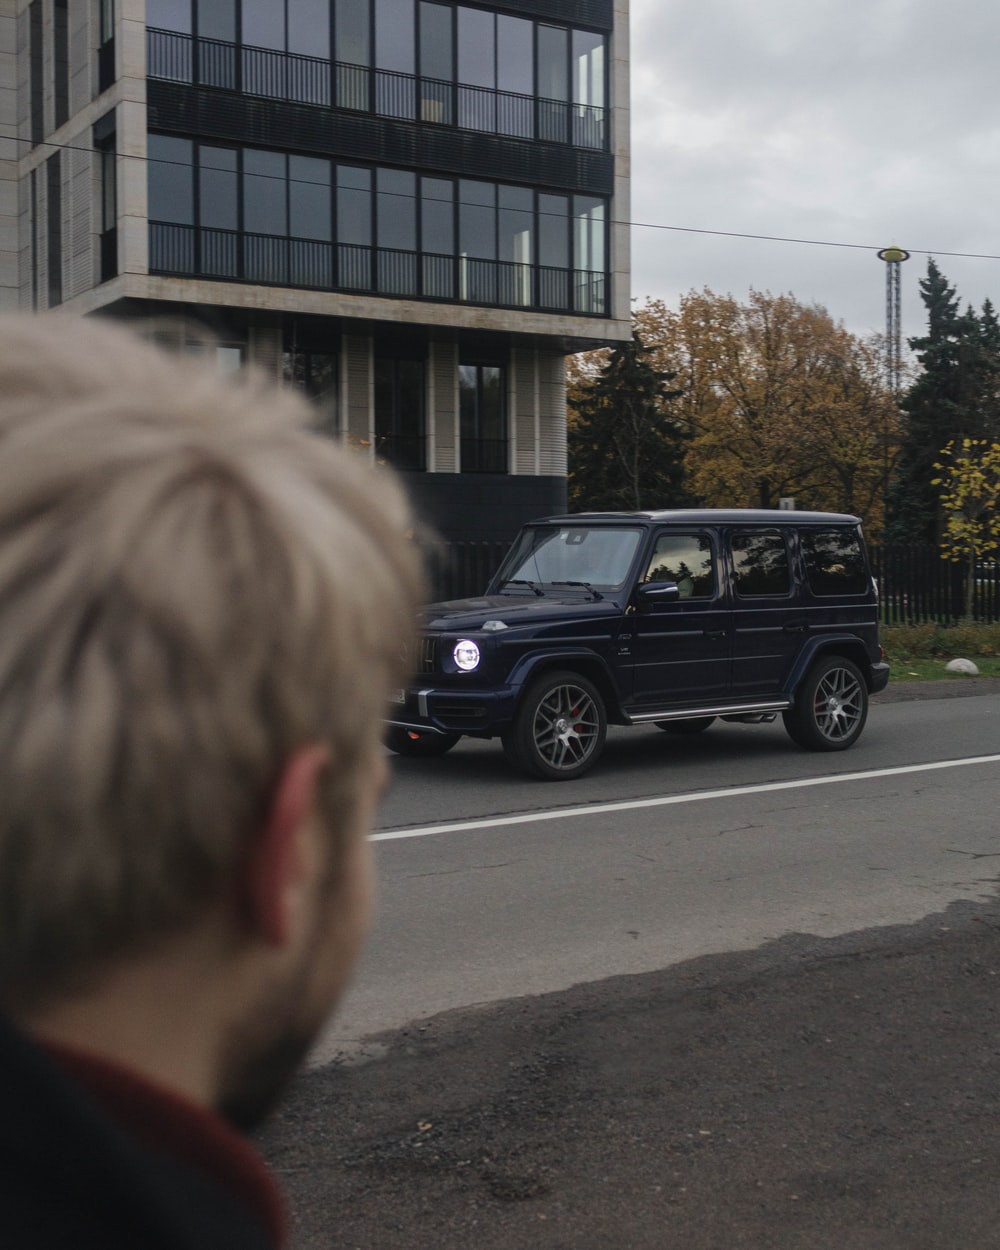 black suv parked near building during daytime